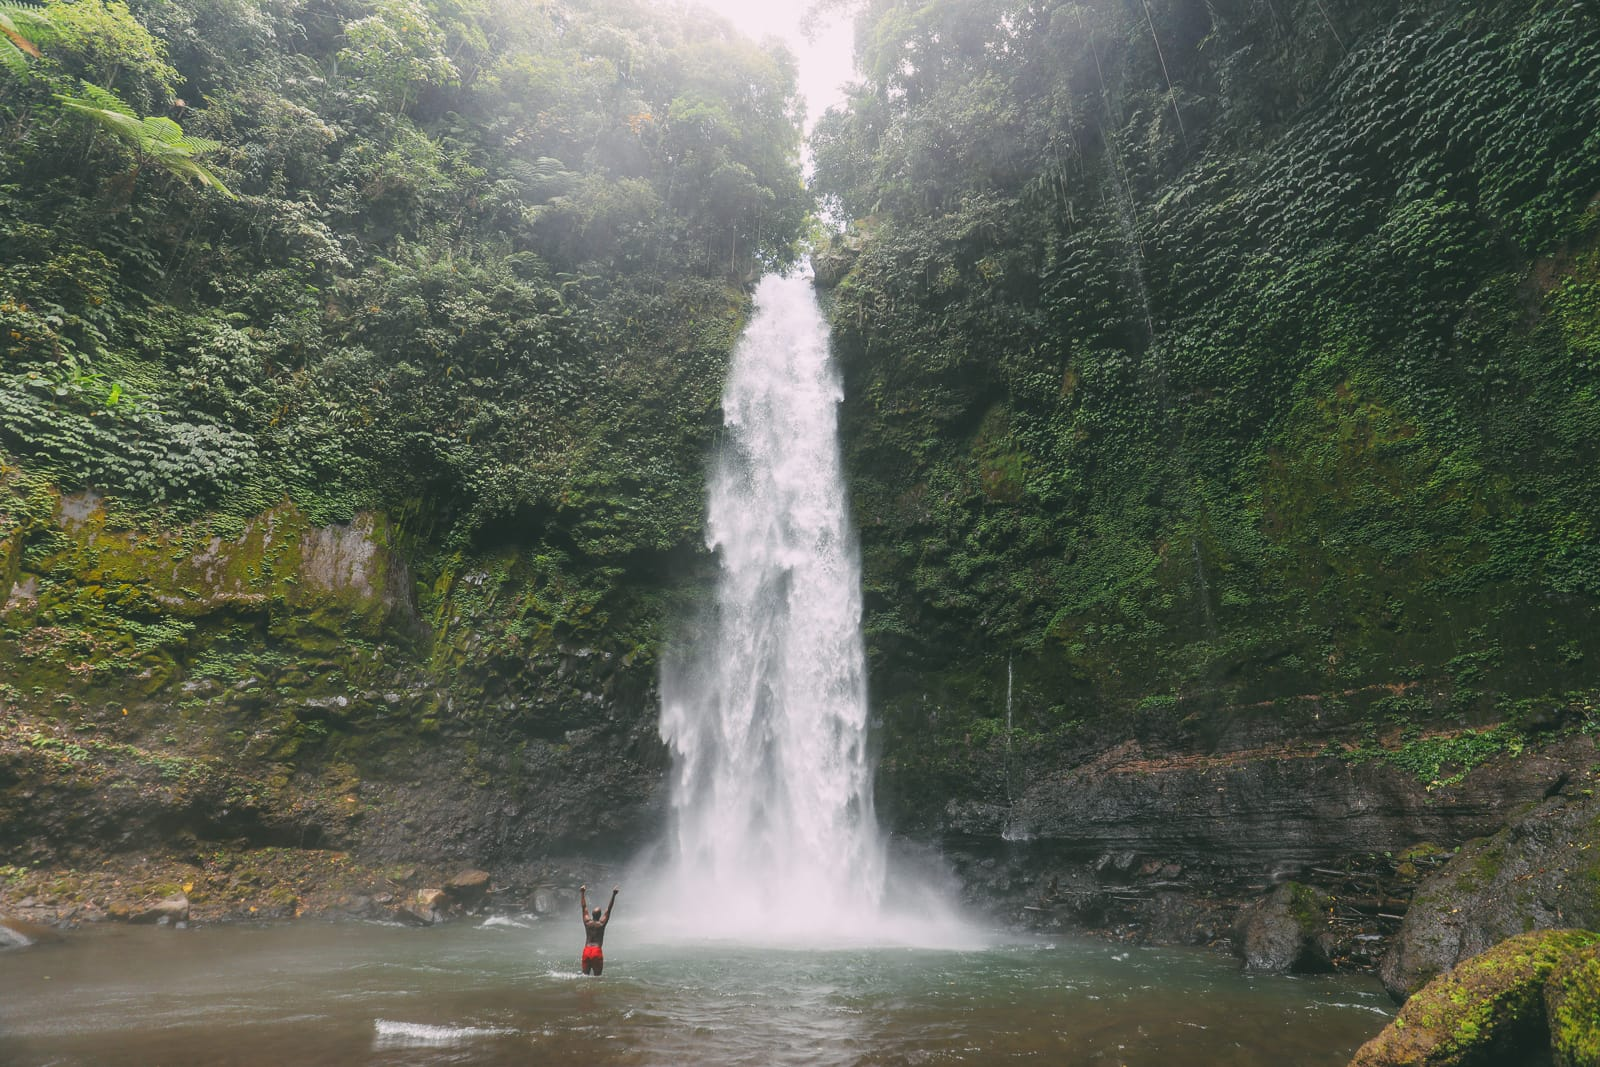 Bali Travel - The Beautiful Nungnung Waterfall And Ulun Danu Bratan Temple (14)